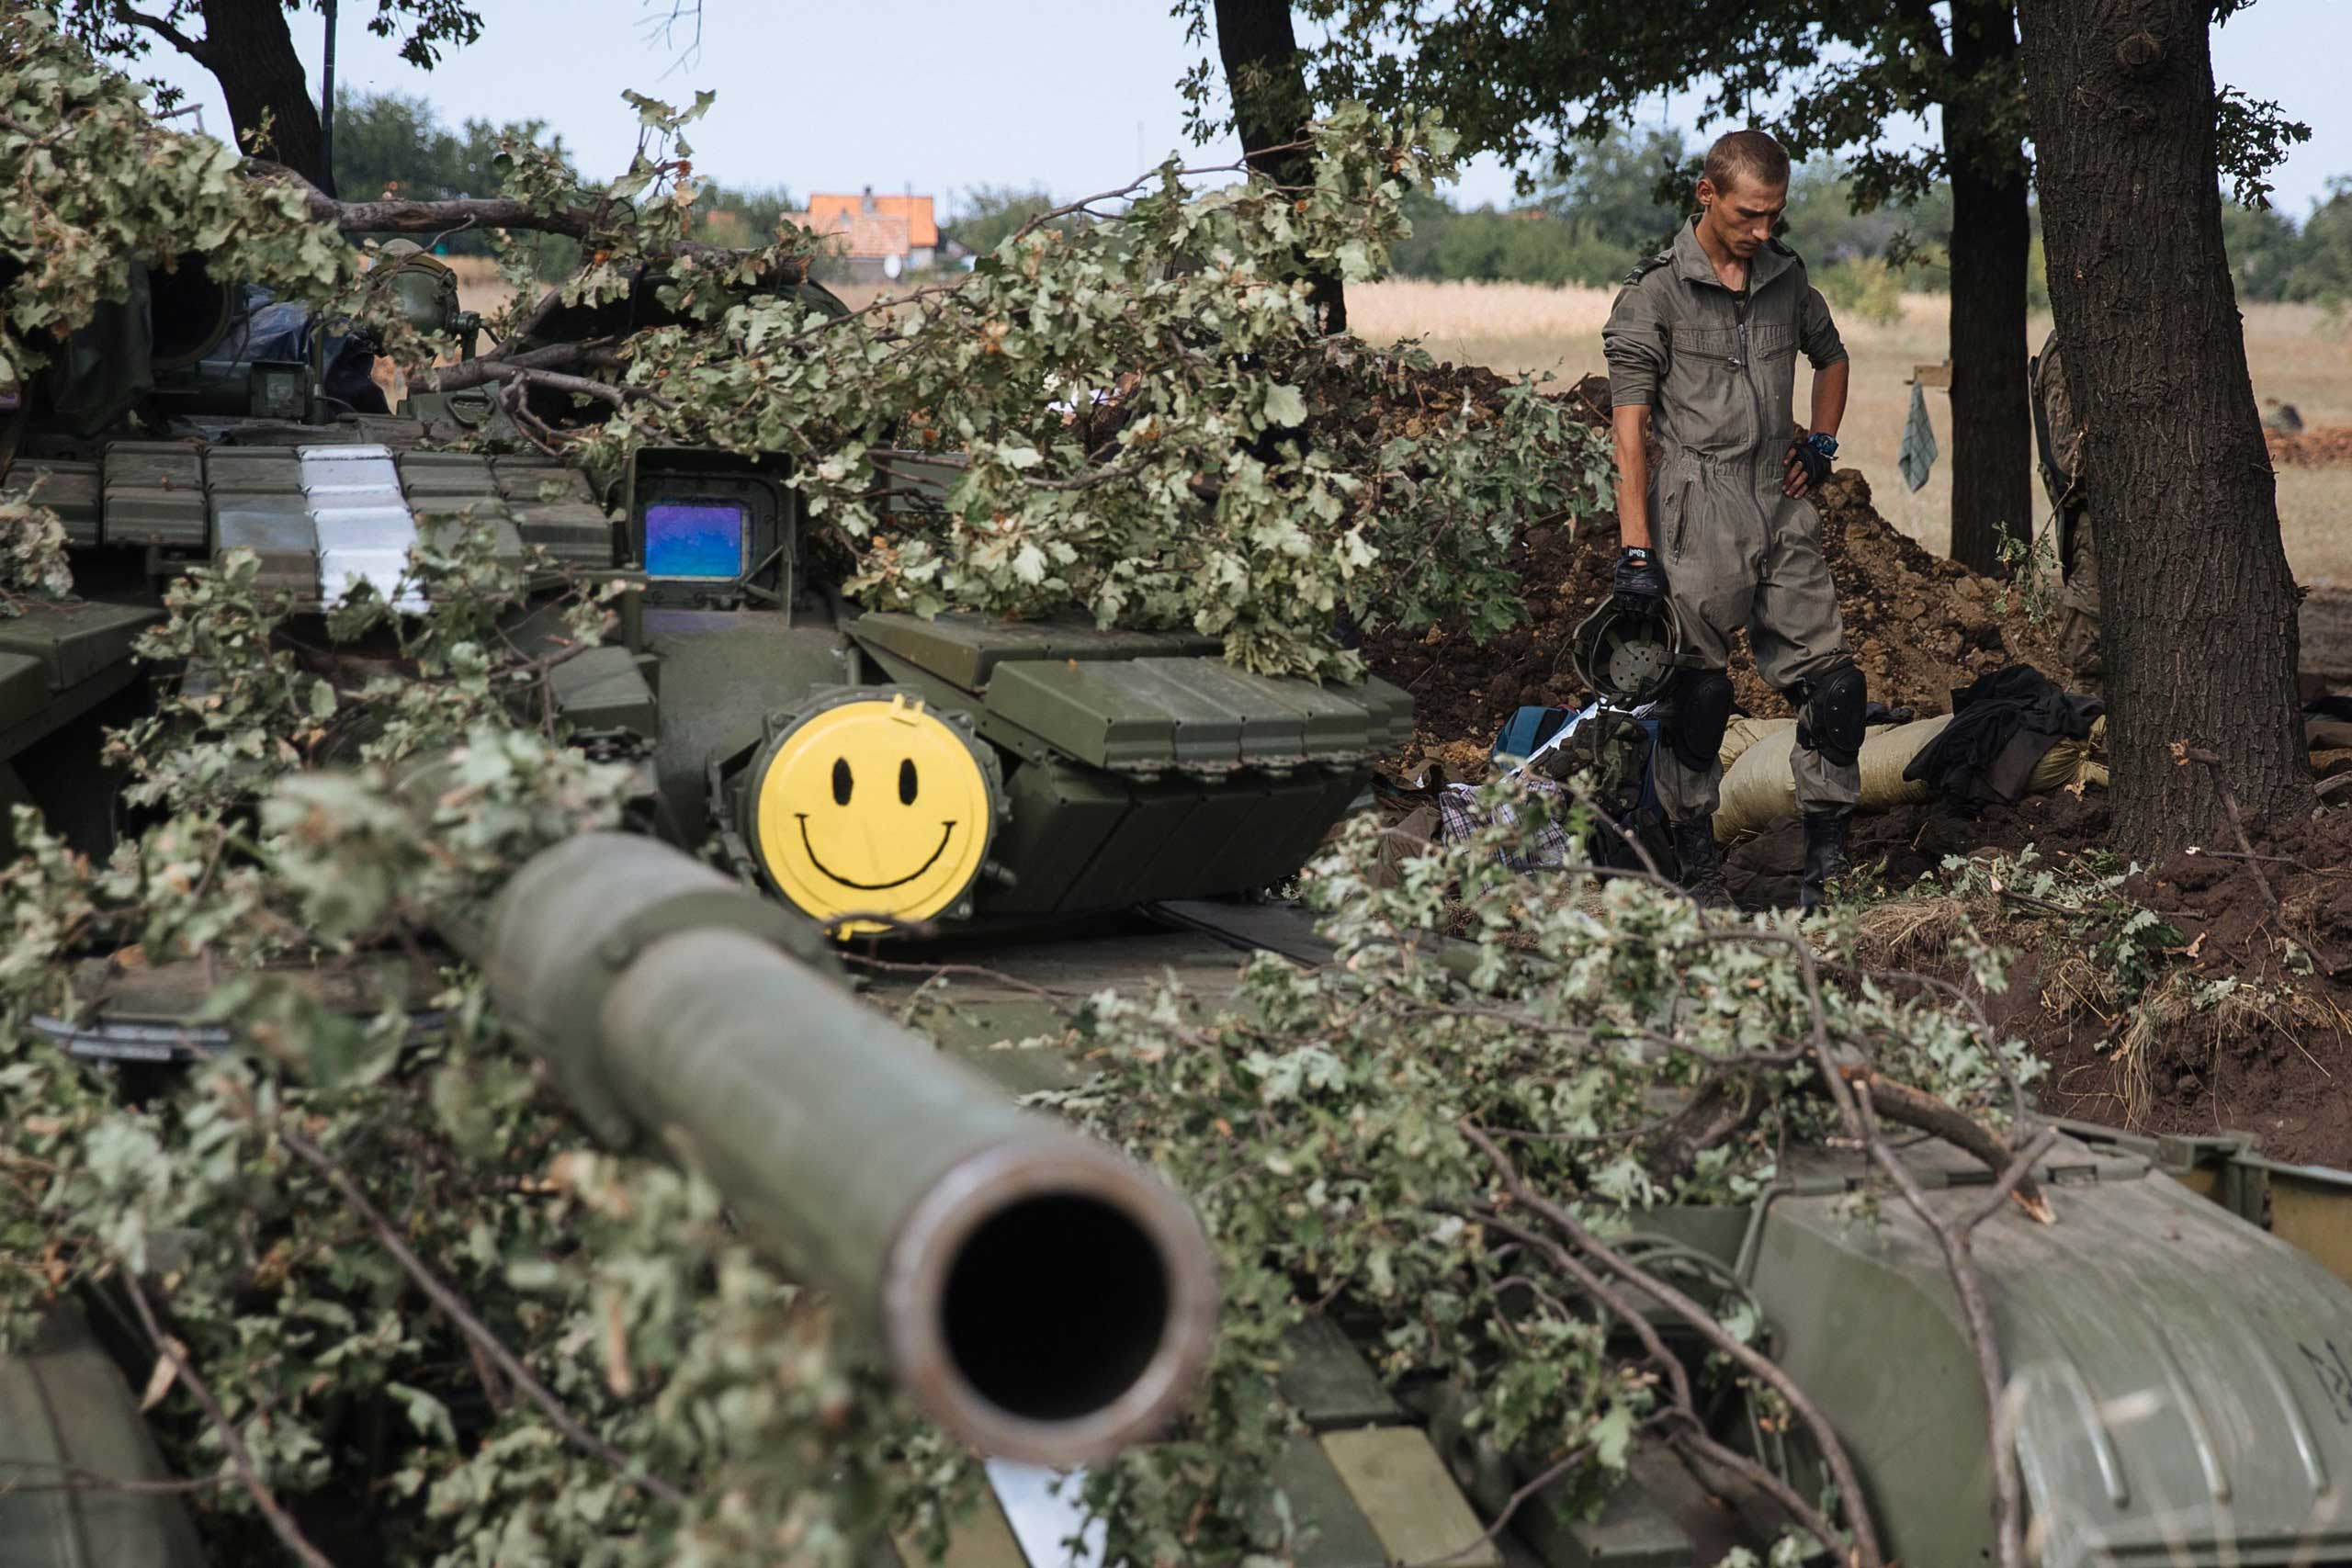 Ukrainian fighters partly wearing non-official uniforms stands next to a tank in a military camp on the front line near Pervomaysk city of Lugansk region, Ukraine, Sept. 12, 2014.